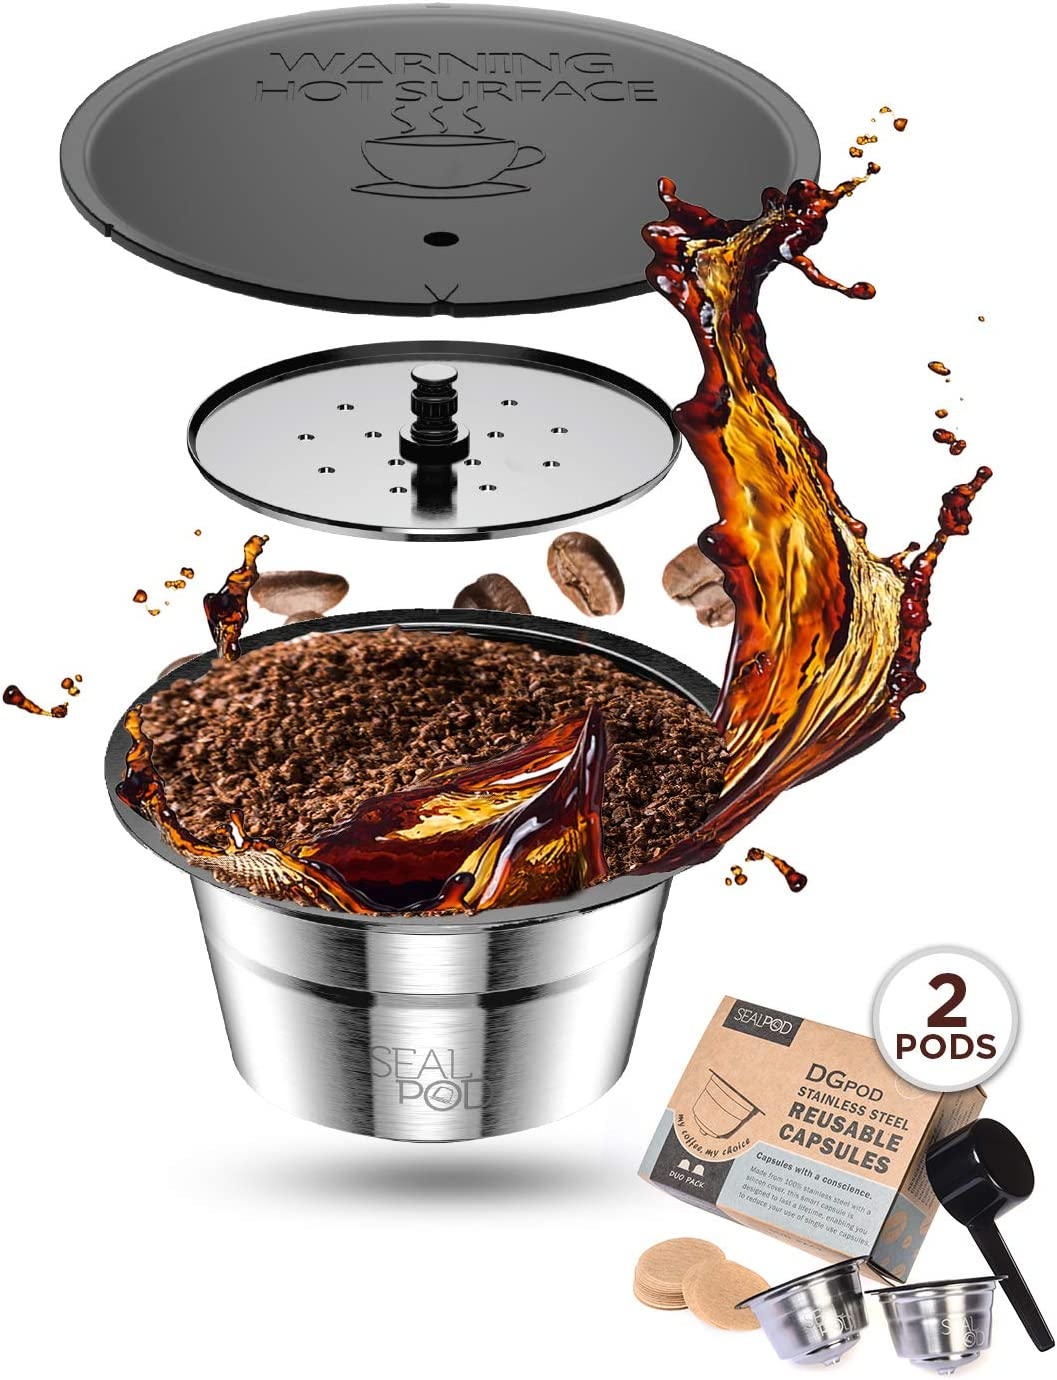 SEALPOD Dolce Gusto Reusable Capsules Coffee Pods Refillable Co safety Japan Maker New